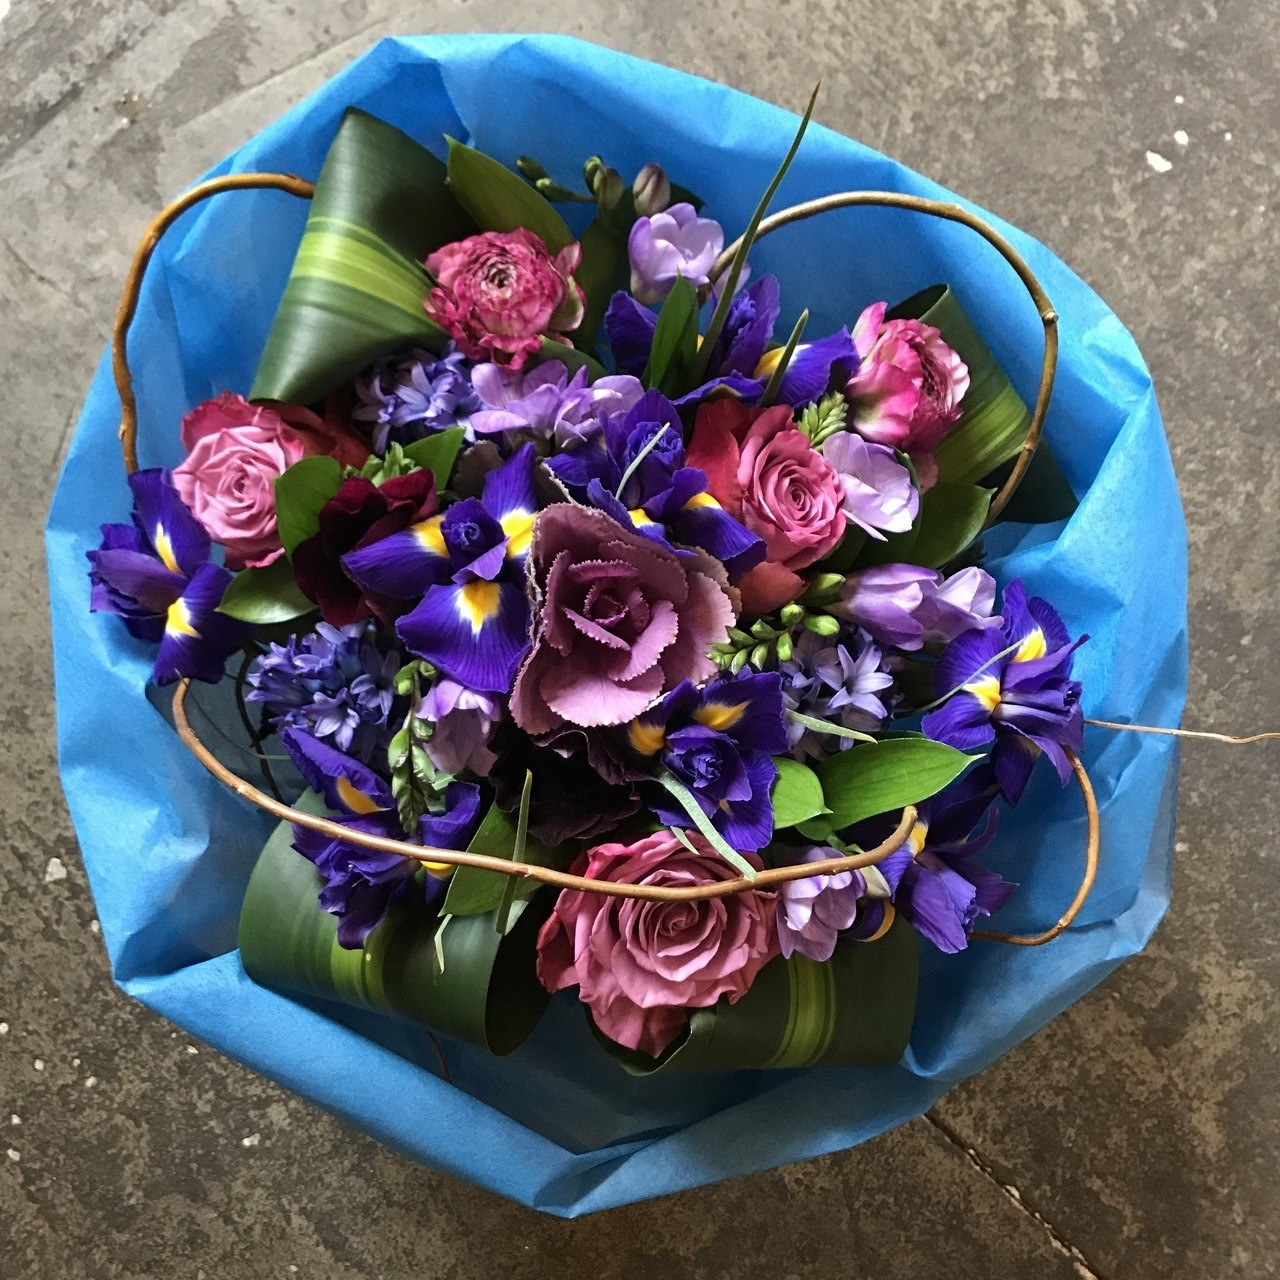 Seasonal purples and blues in a hand tied roll wrapped bouquet.